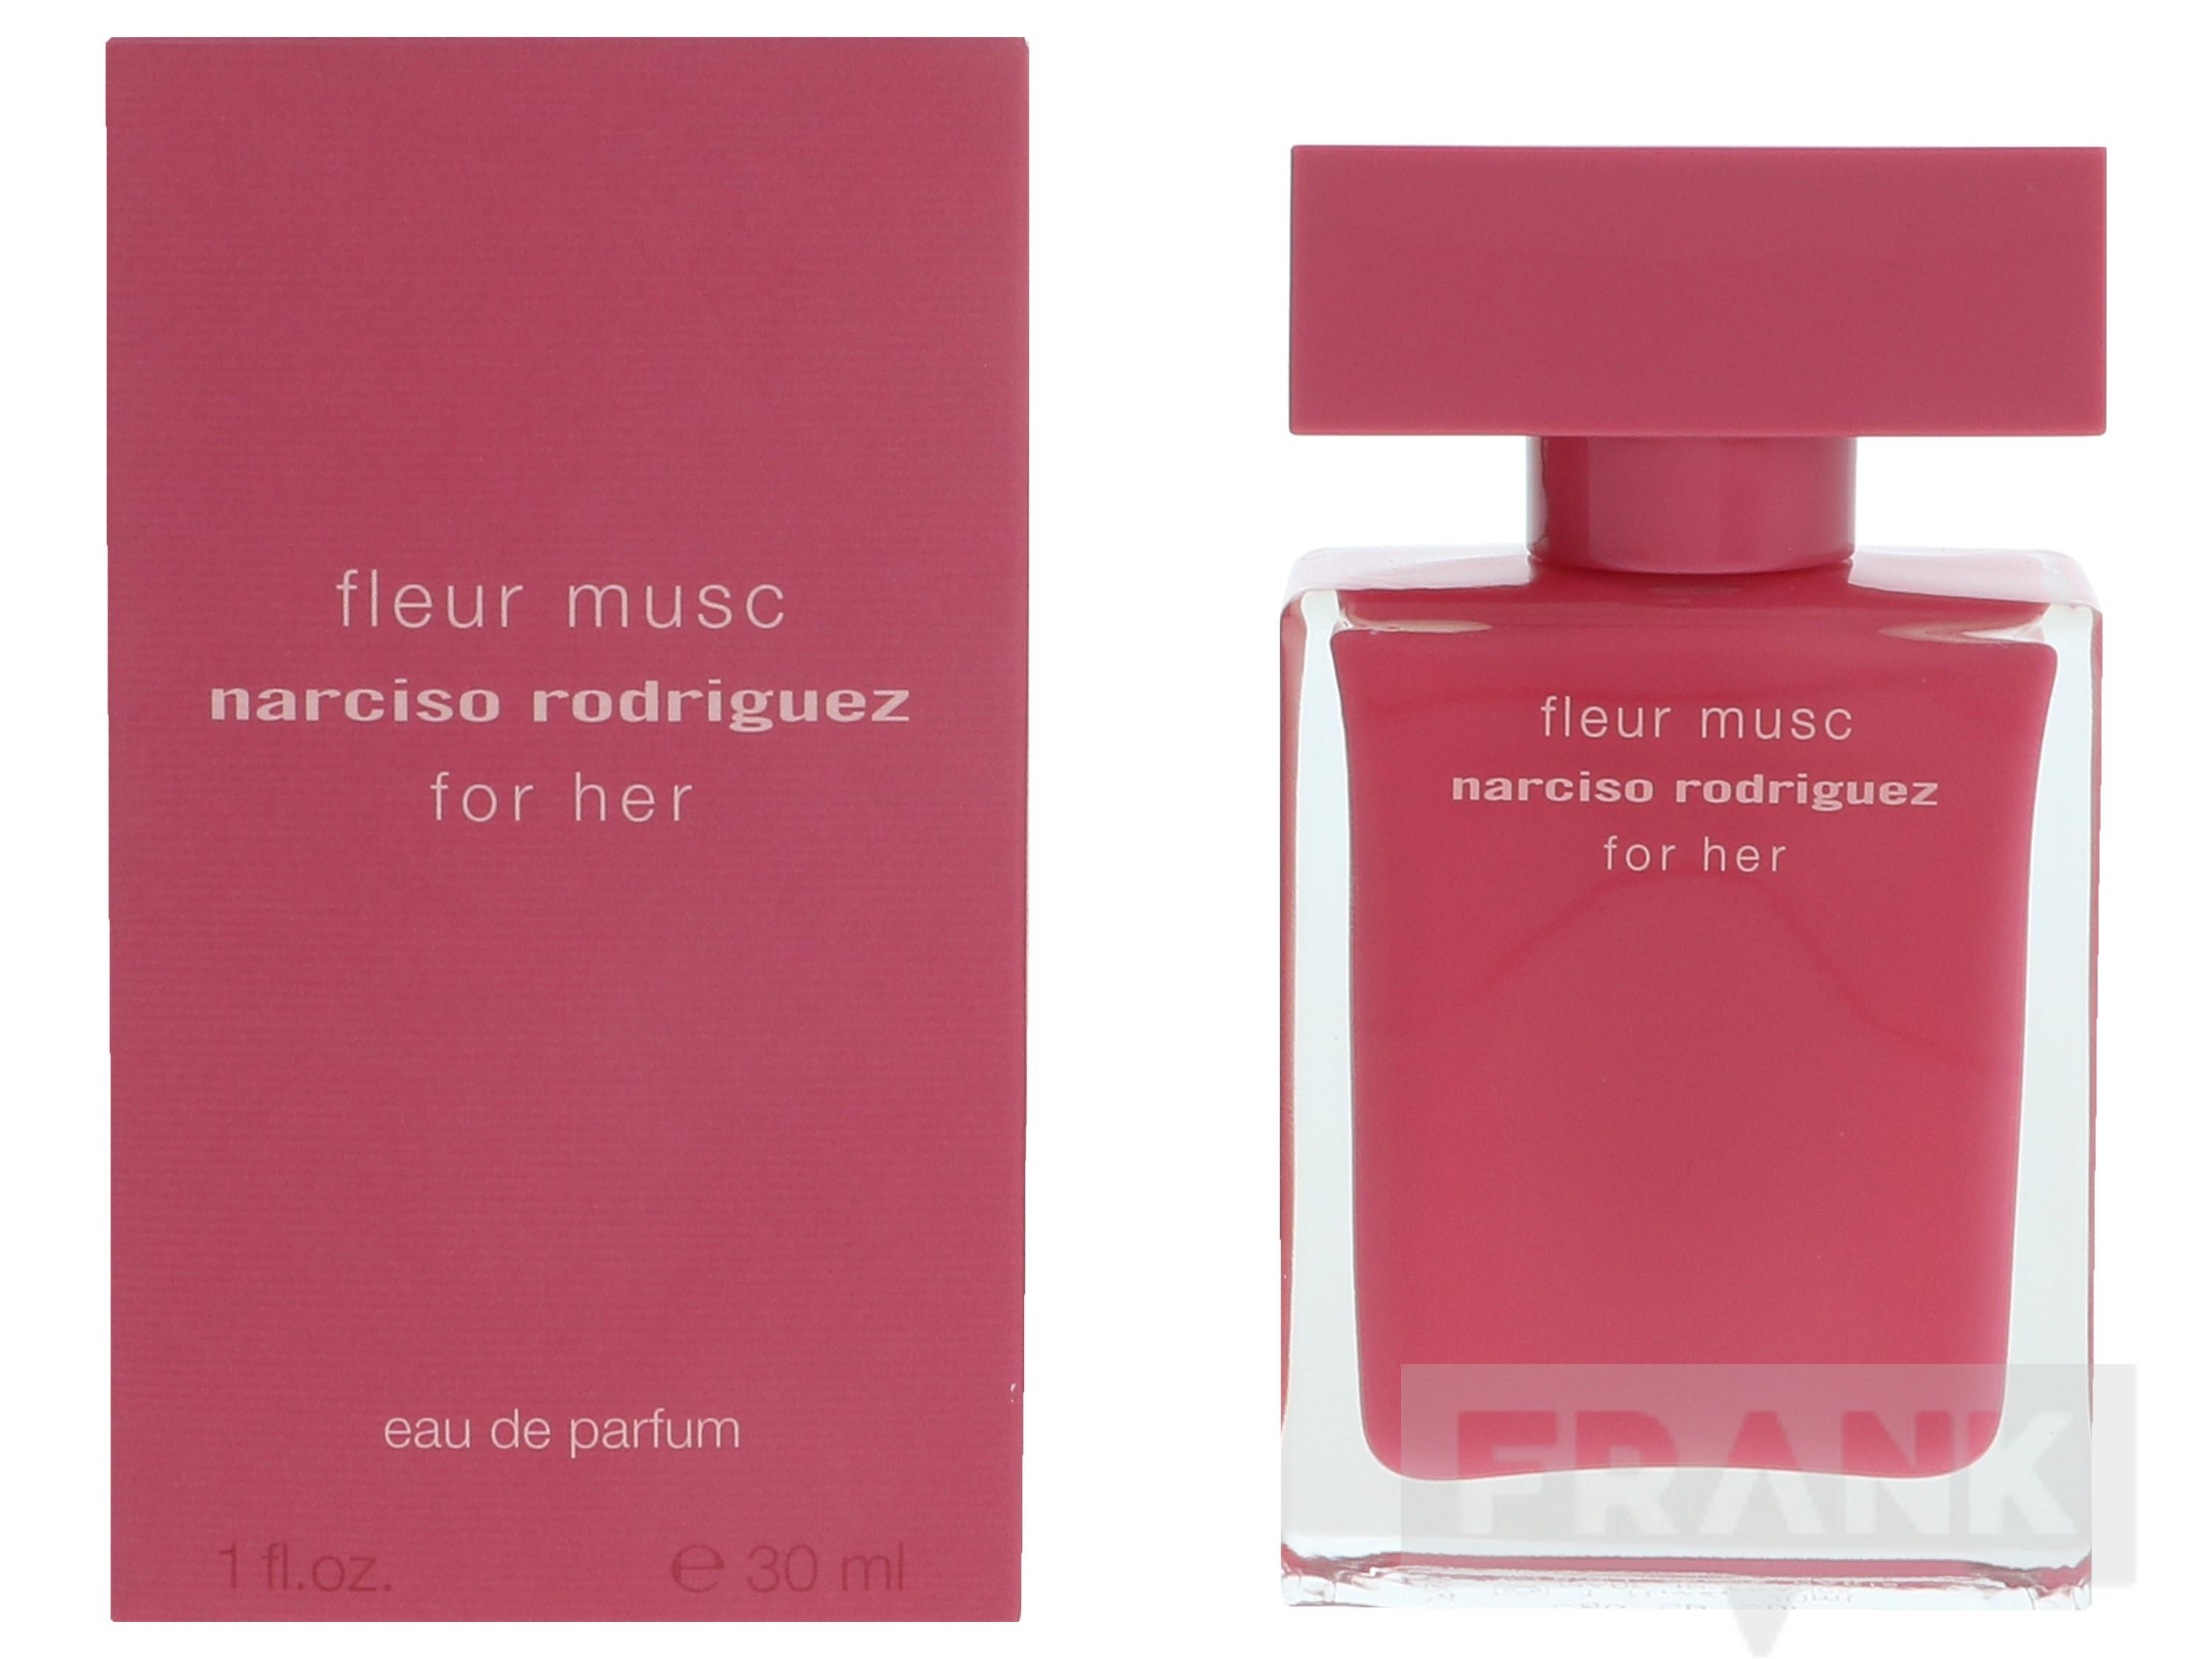 Narciso Rodriguez Fleur Musc For Her Spray EDP kopen?